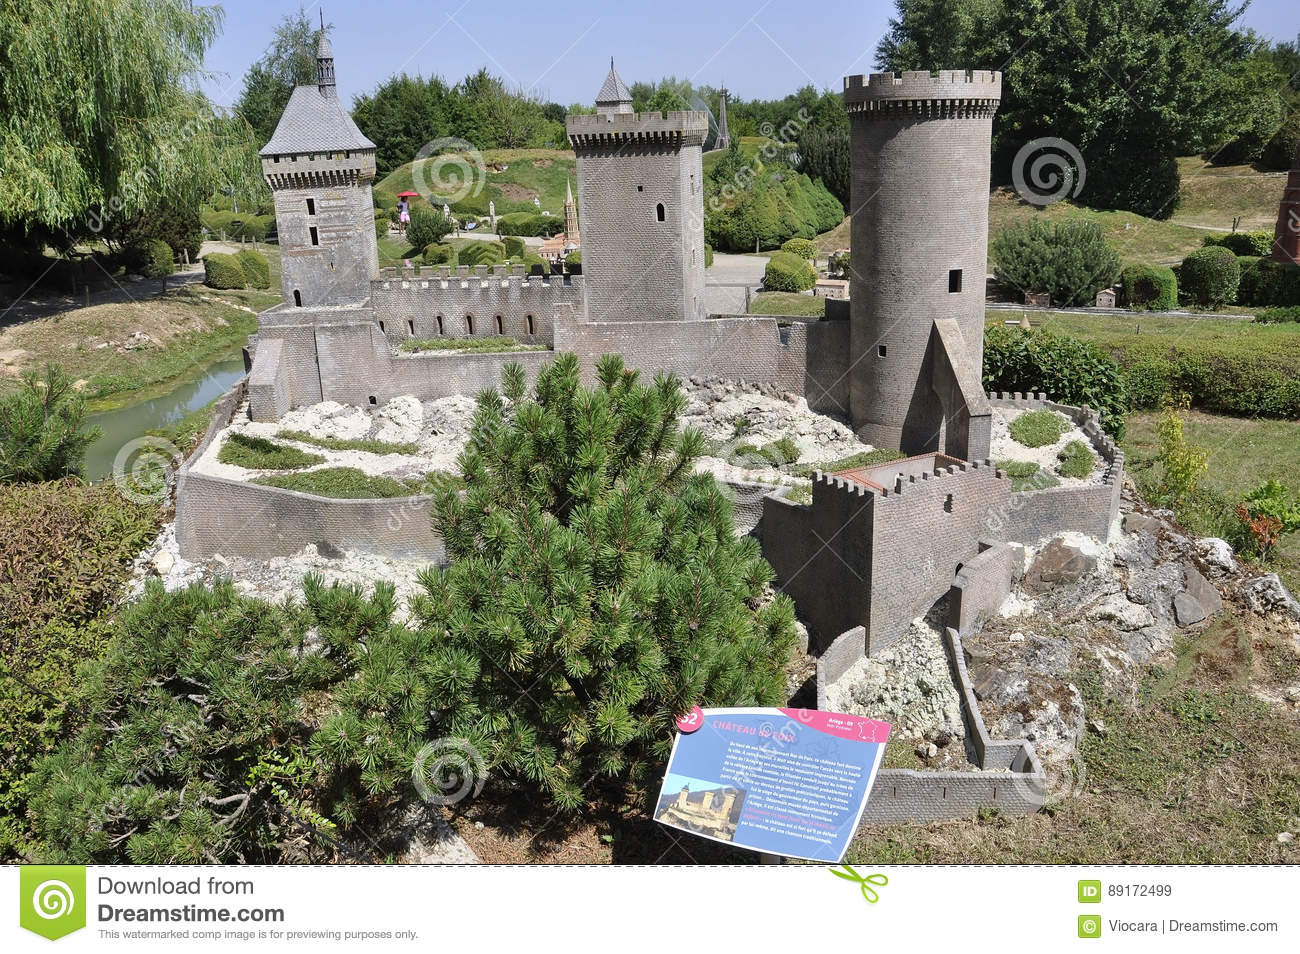 Elancourt F,July 16th: Chateau de Foix in the Miniature Reproduction of Monuments Park from France